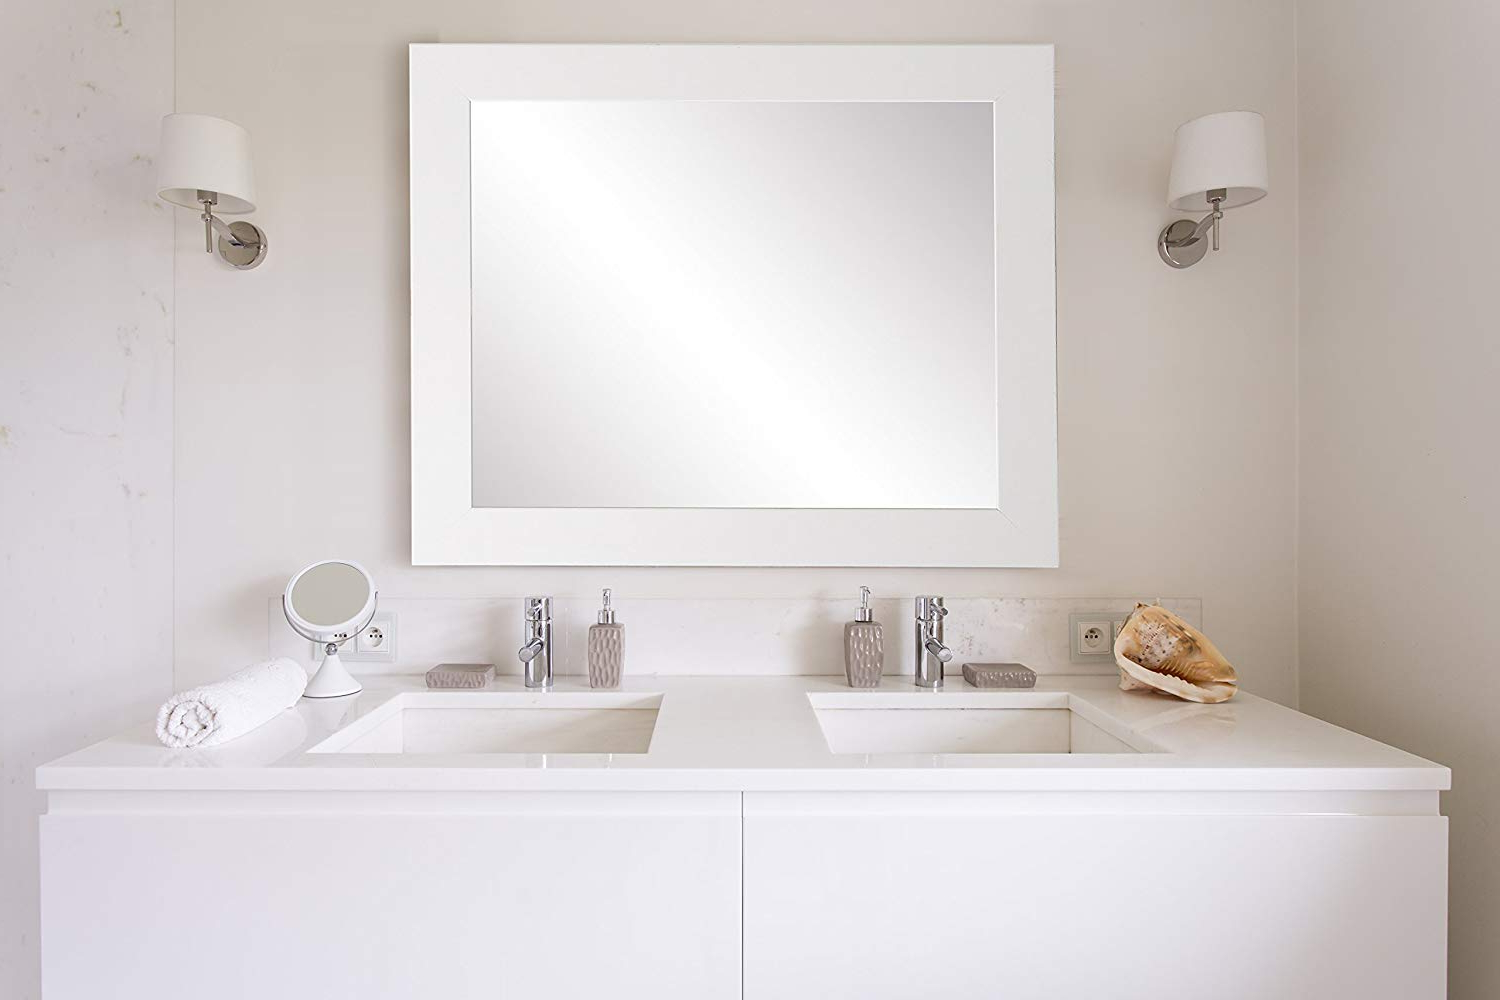 "Favorite Brandtworks 32"" X 38"" Wall Mirror, Large, White In Large White Framed Wall Mirrors (View 10 of 20)"